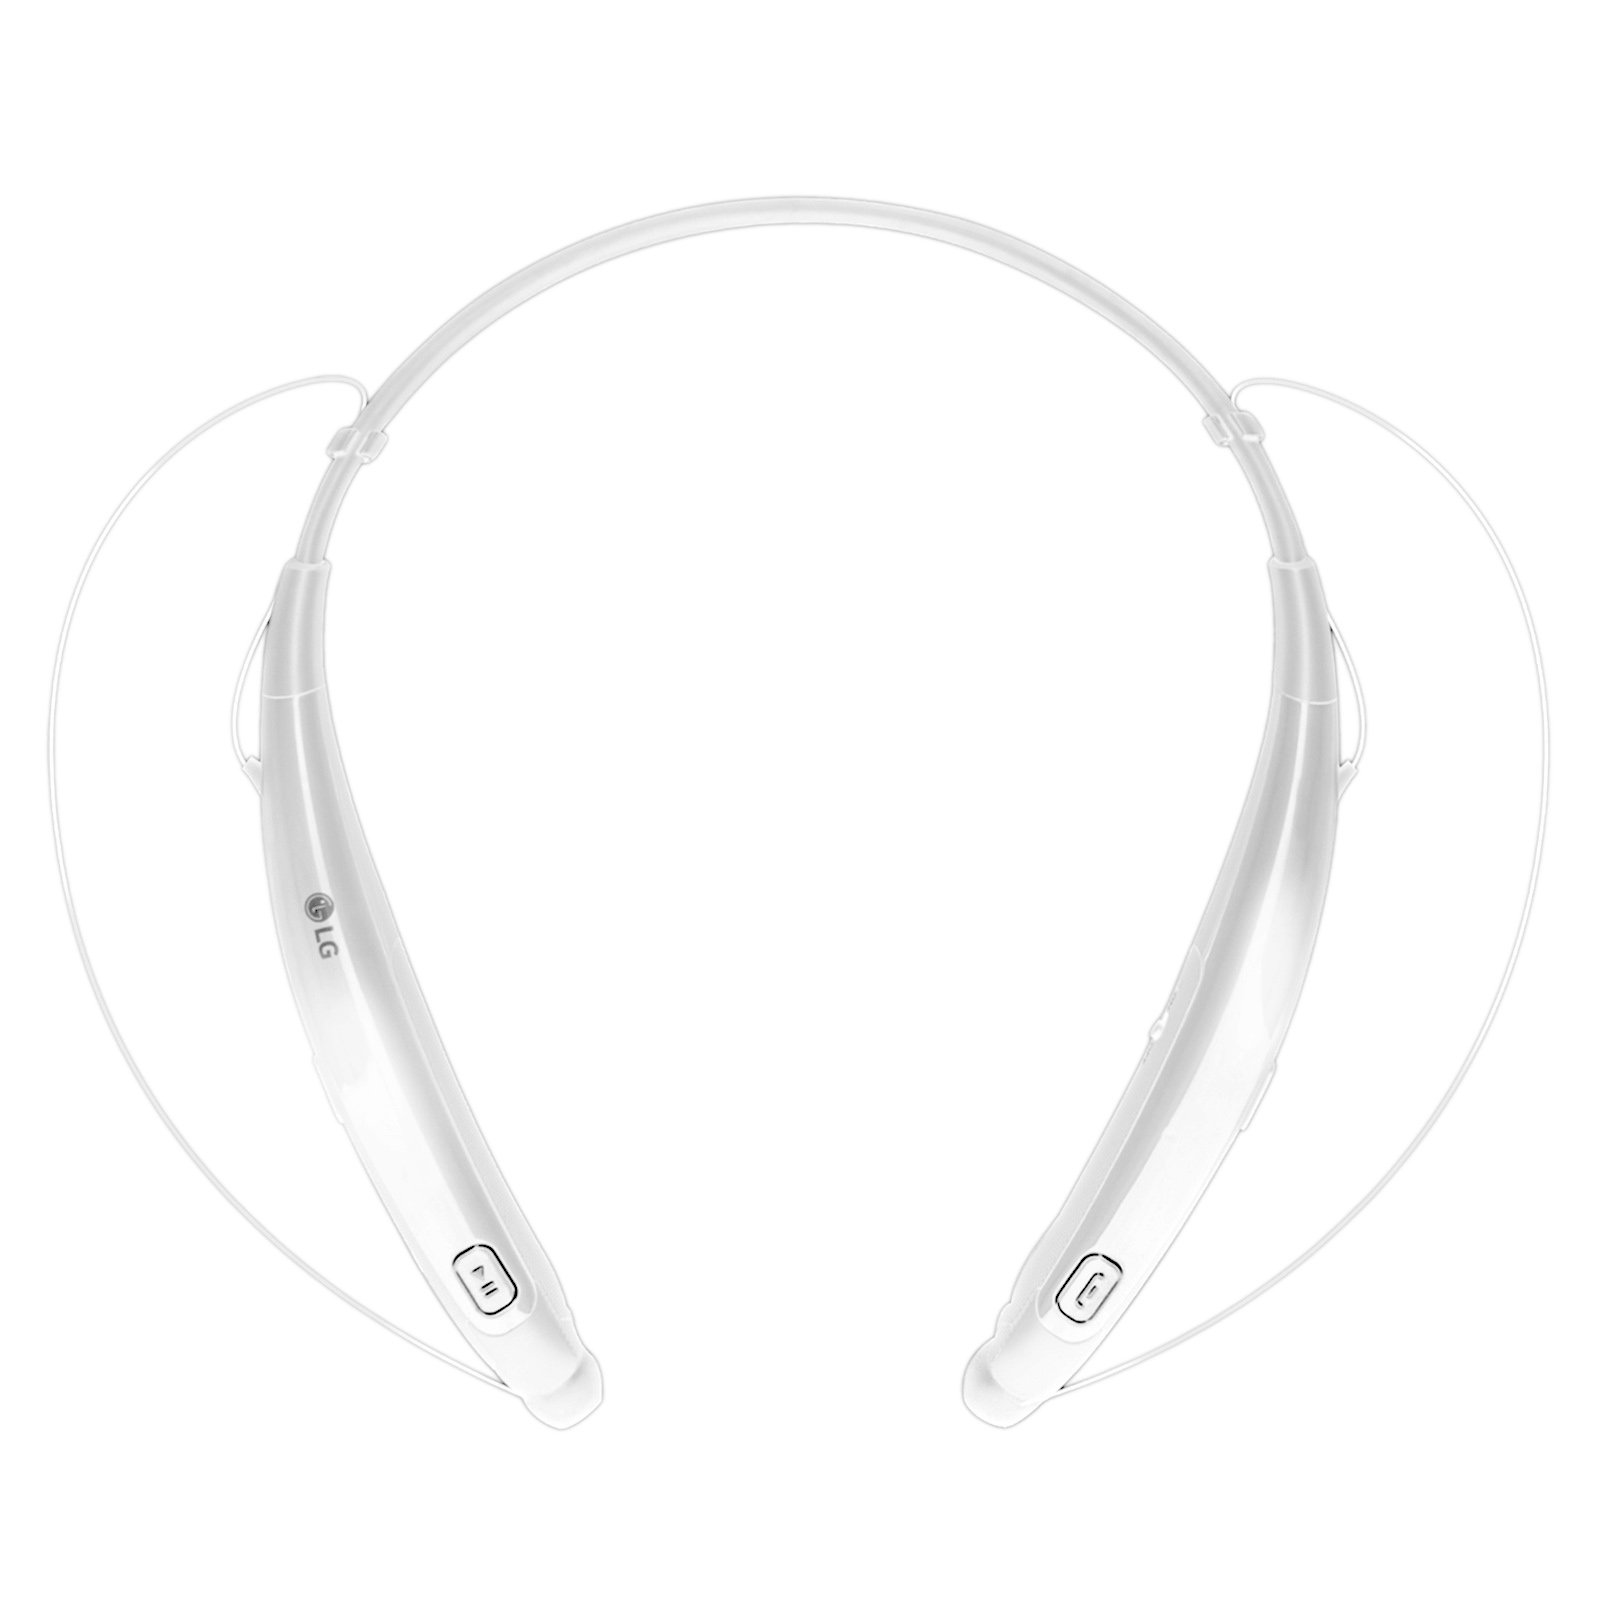 LG Electronics Tone Pro HBS-770 Stereo Bluetooth Headphones White (Certified Refurbished)